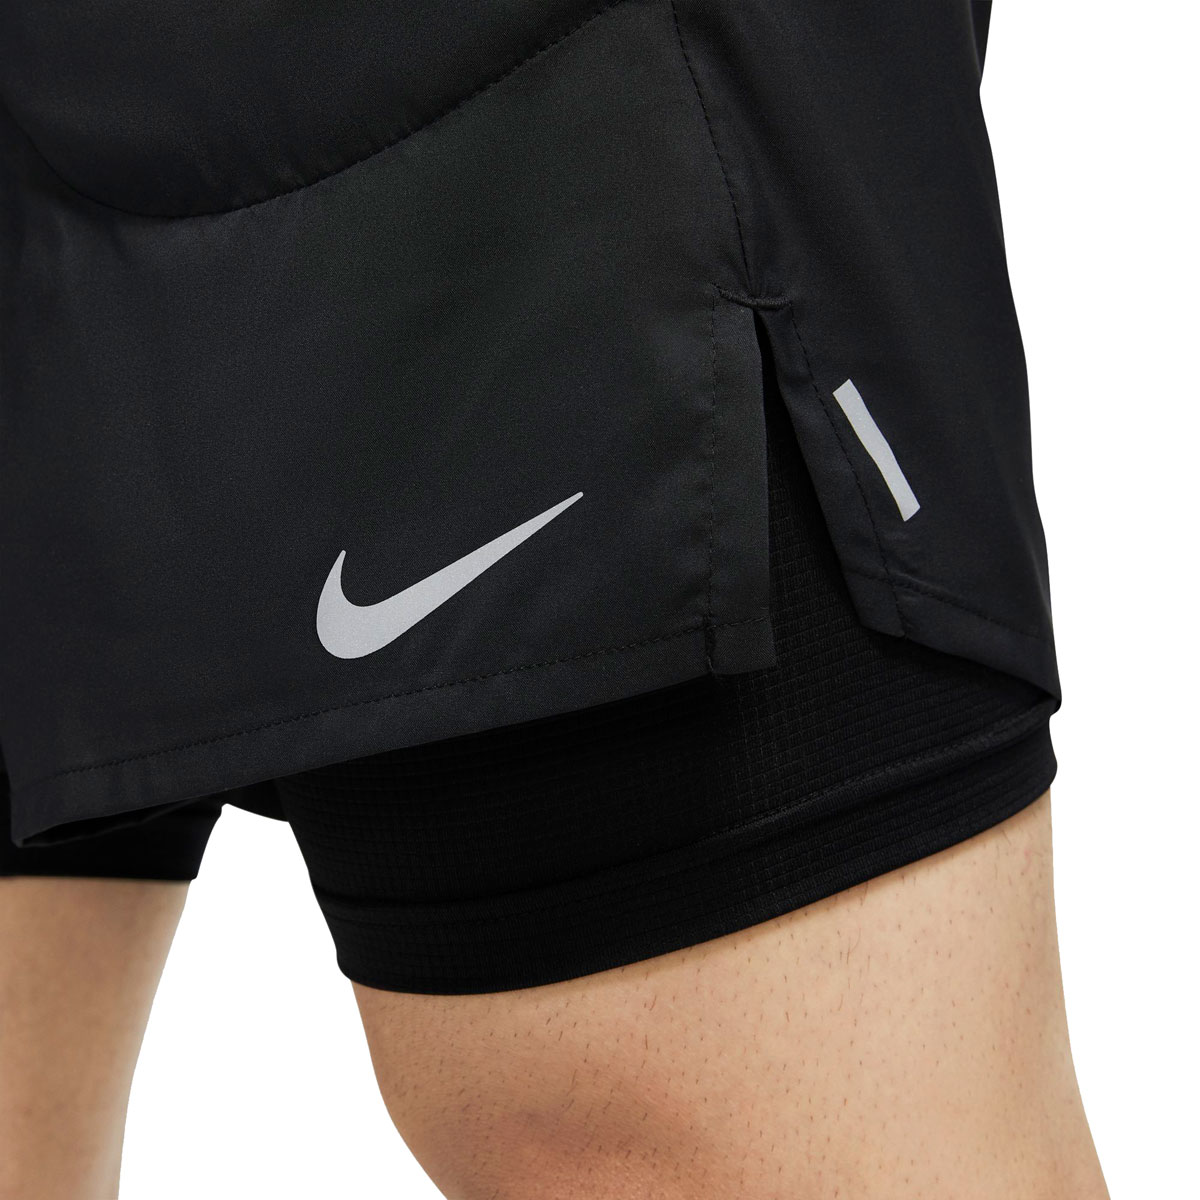 "Men's Nike Flex Stride 7"" 2-In-1 Running Shorts - Color: Black/Reflective Silver - Size: XXL, Black/Reflective Silver, large, image 4"